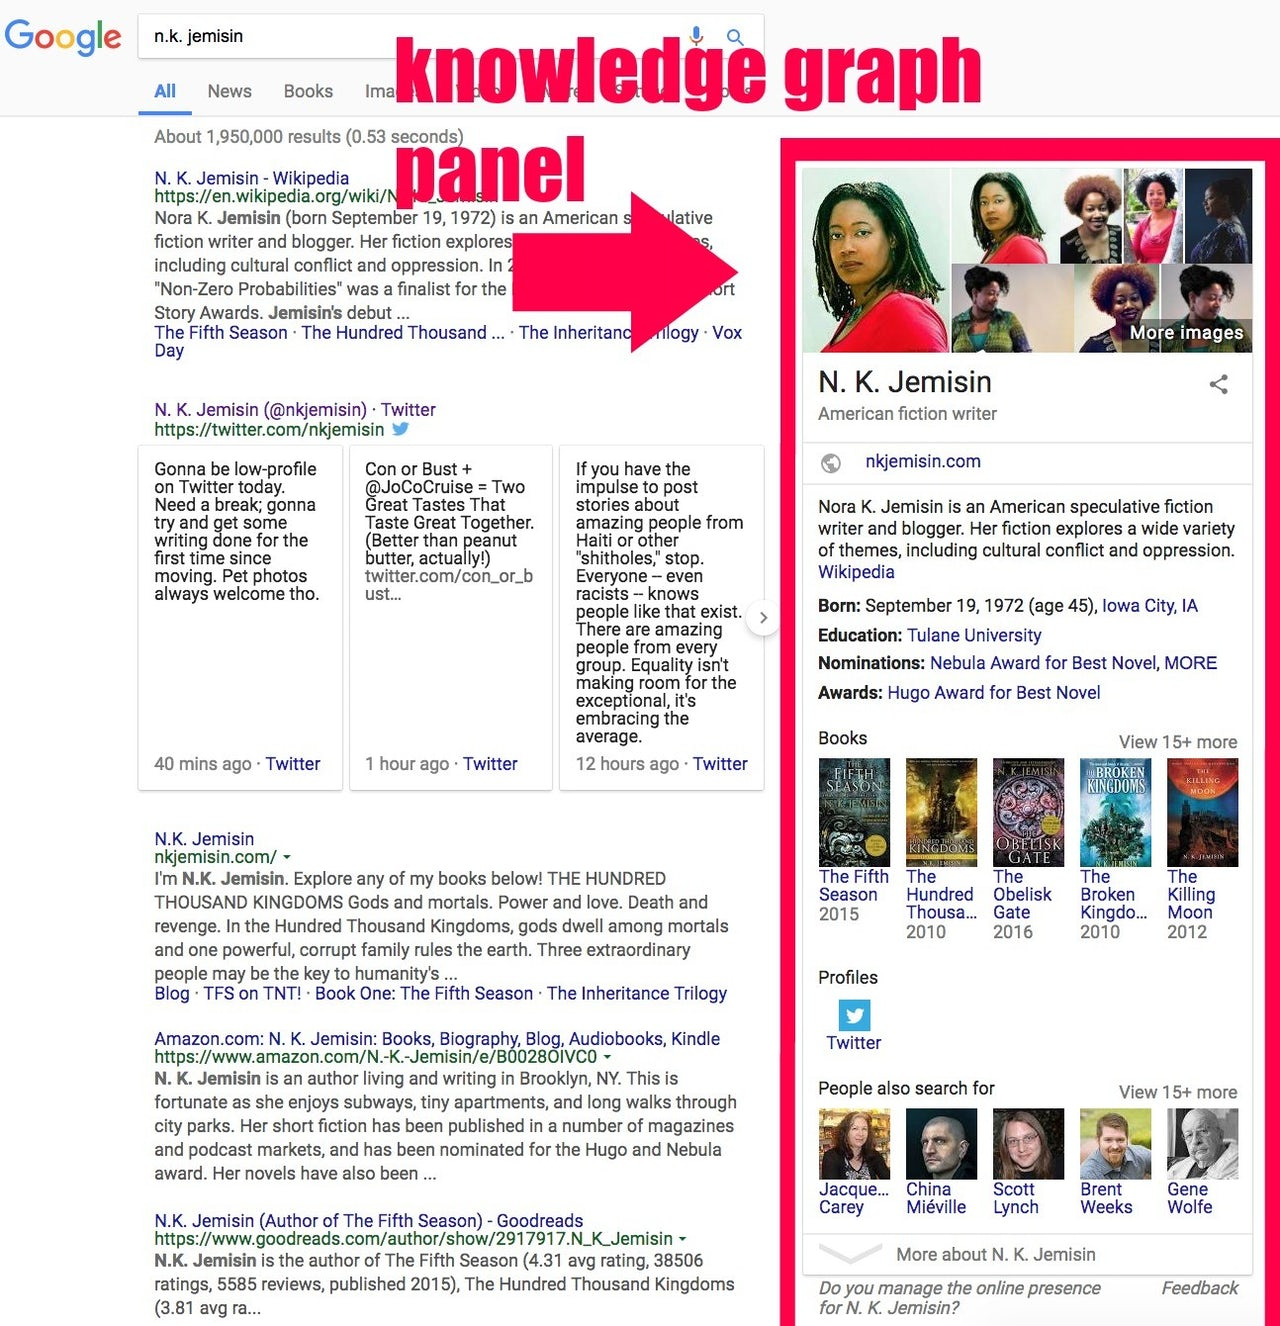 A search for author N.K. Jemisin on January 12, 2018 pulls up results from Google's Knowledge Graph in a neat panel on the right margin next to the search results.